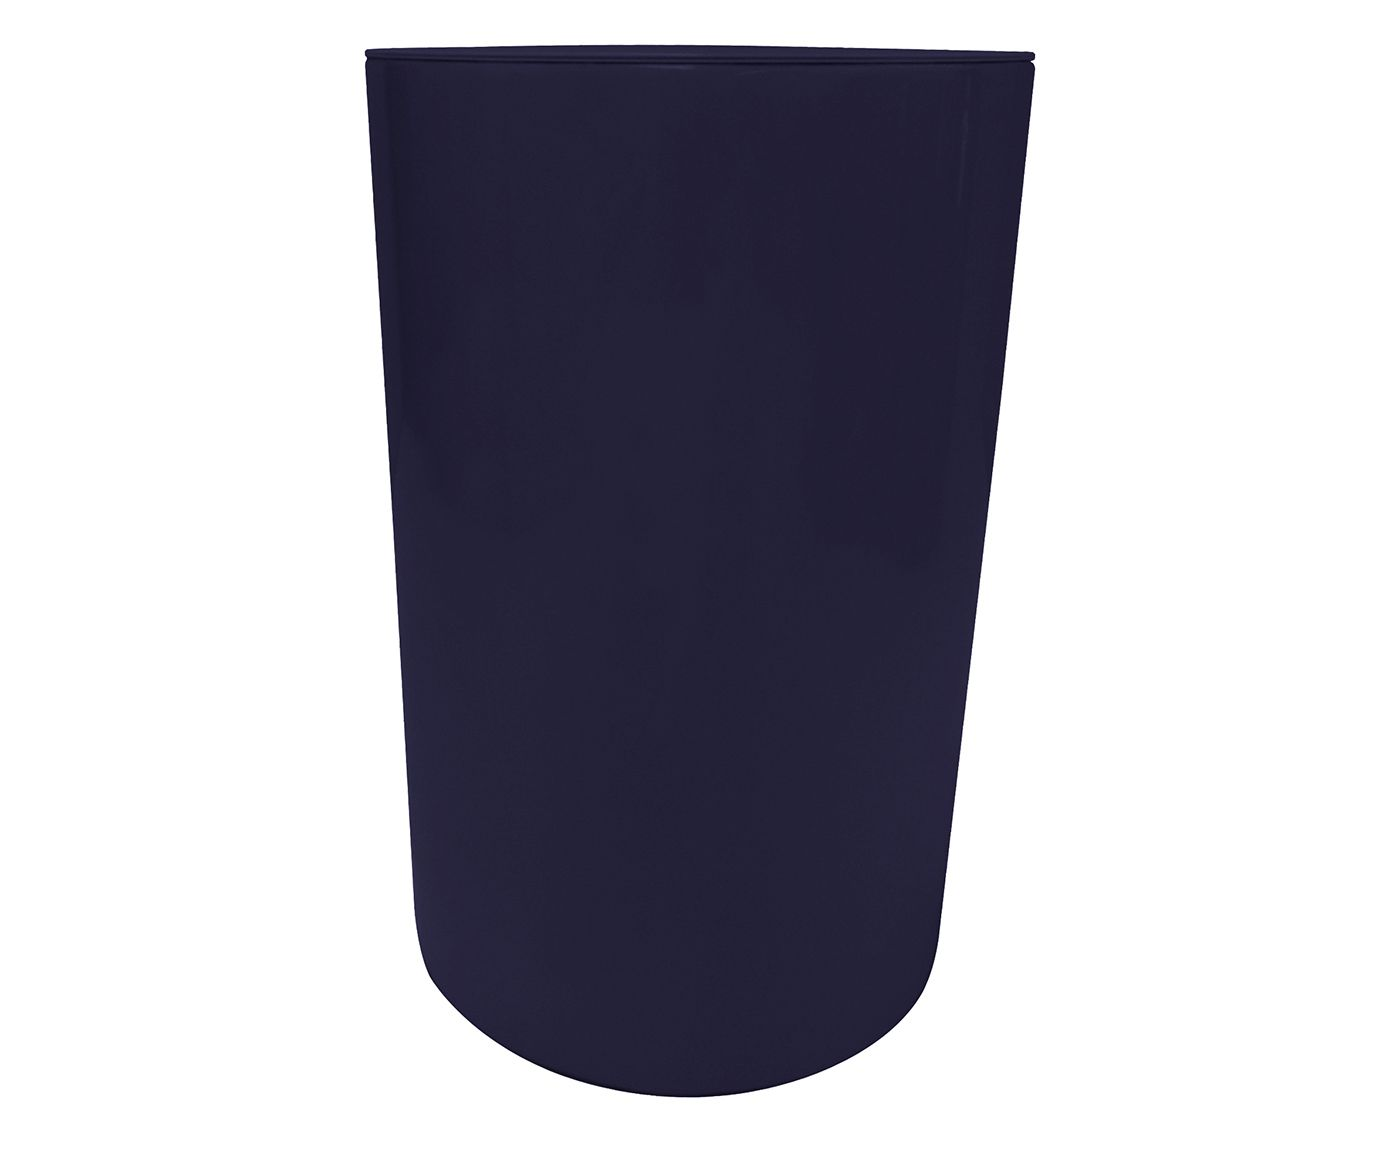 Mesa Lateral Baril - Jeans | Westwing.com.br